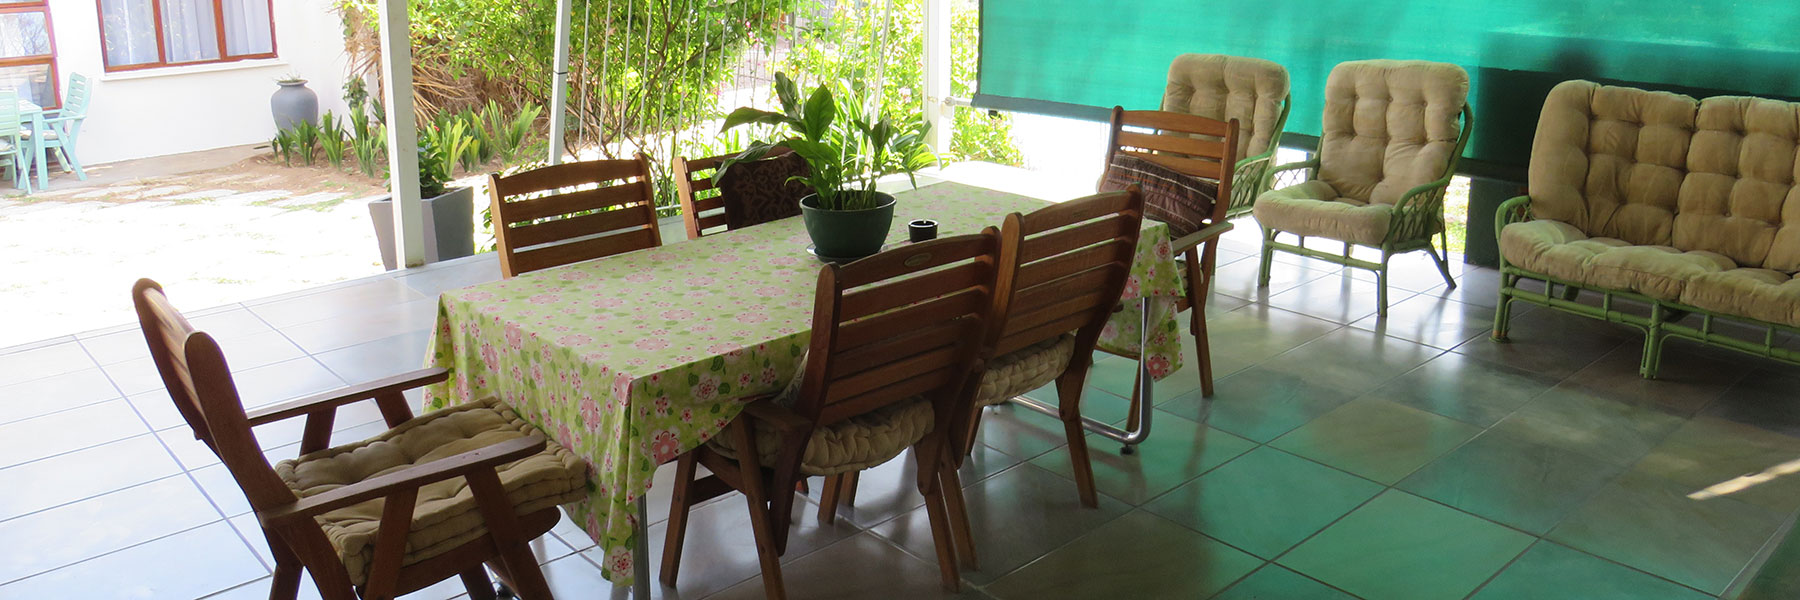 Covered verandah with 6-seater table